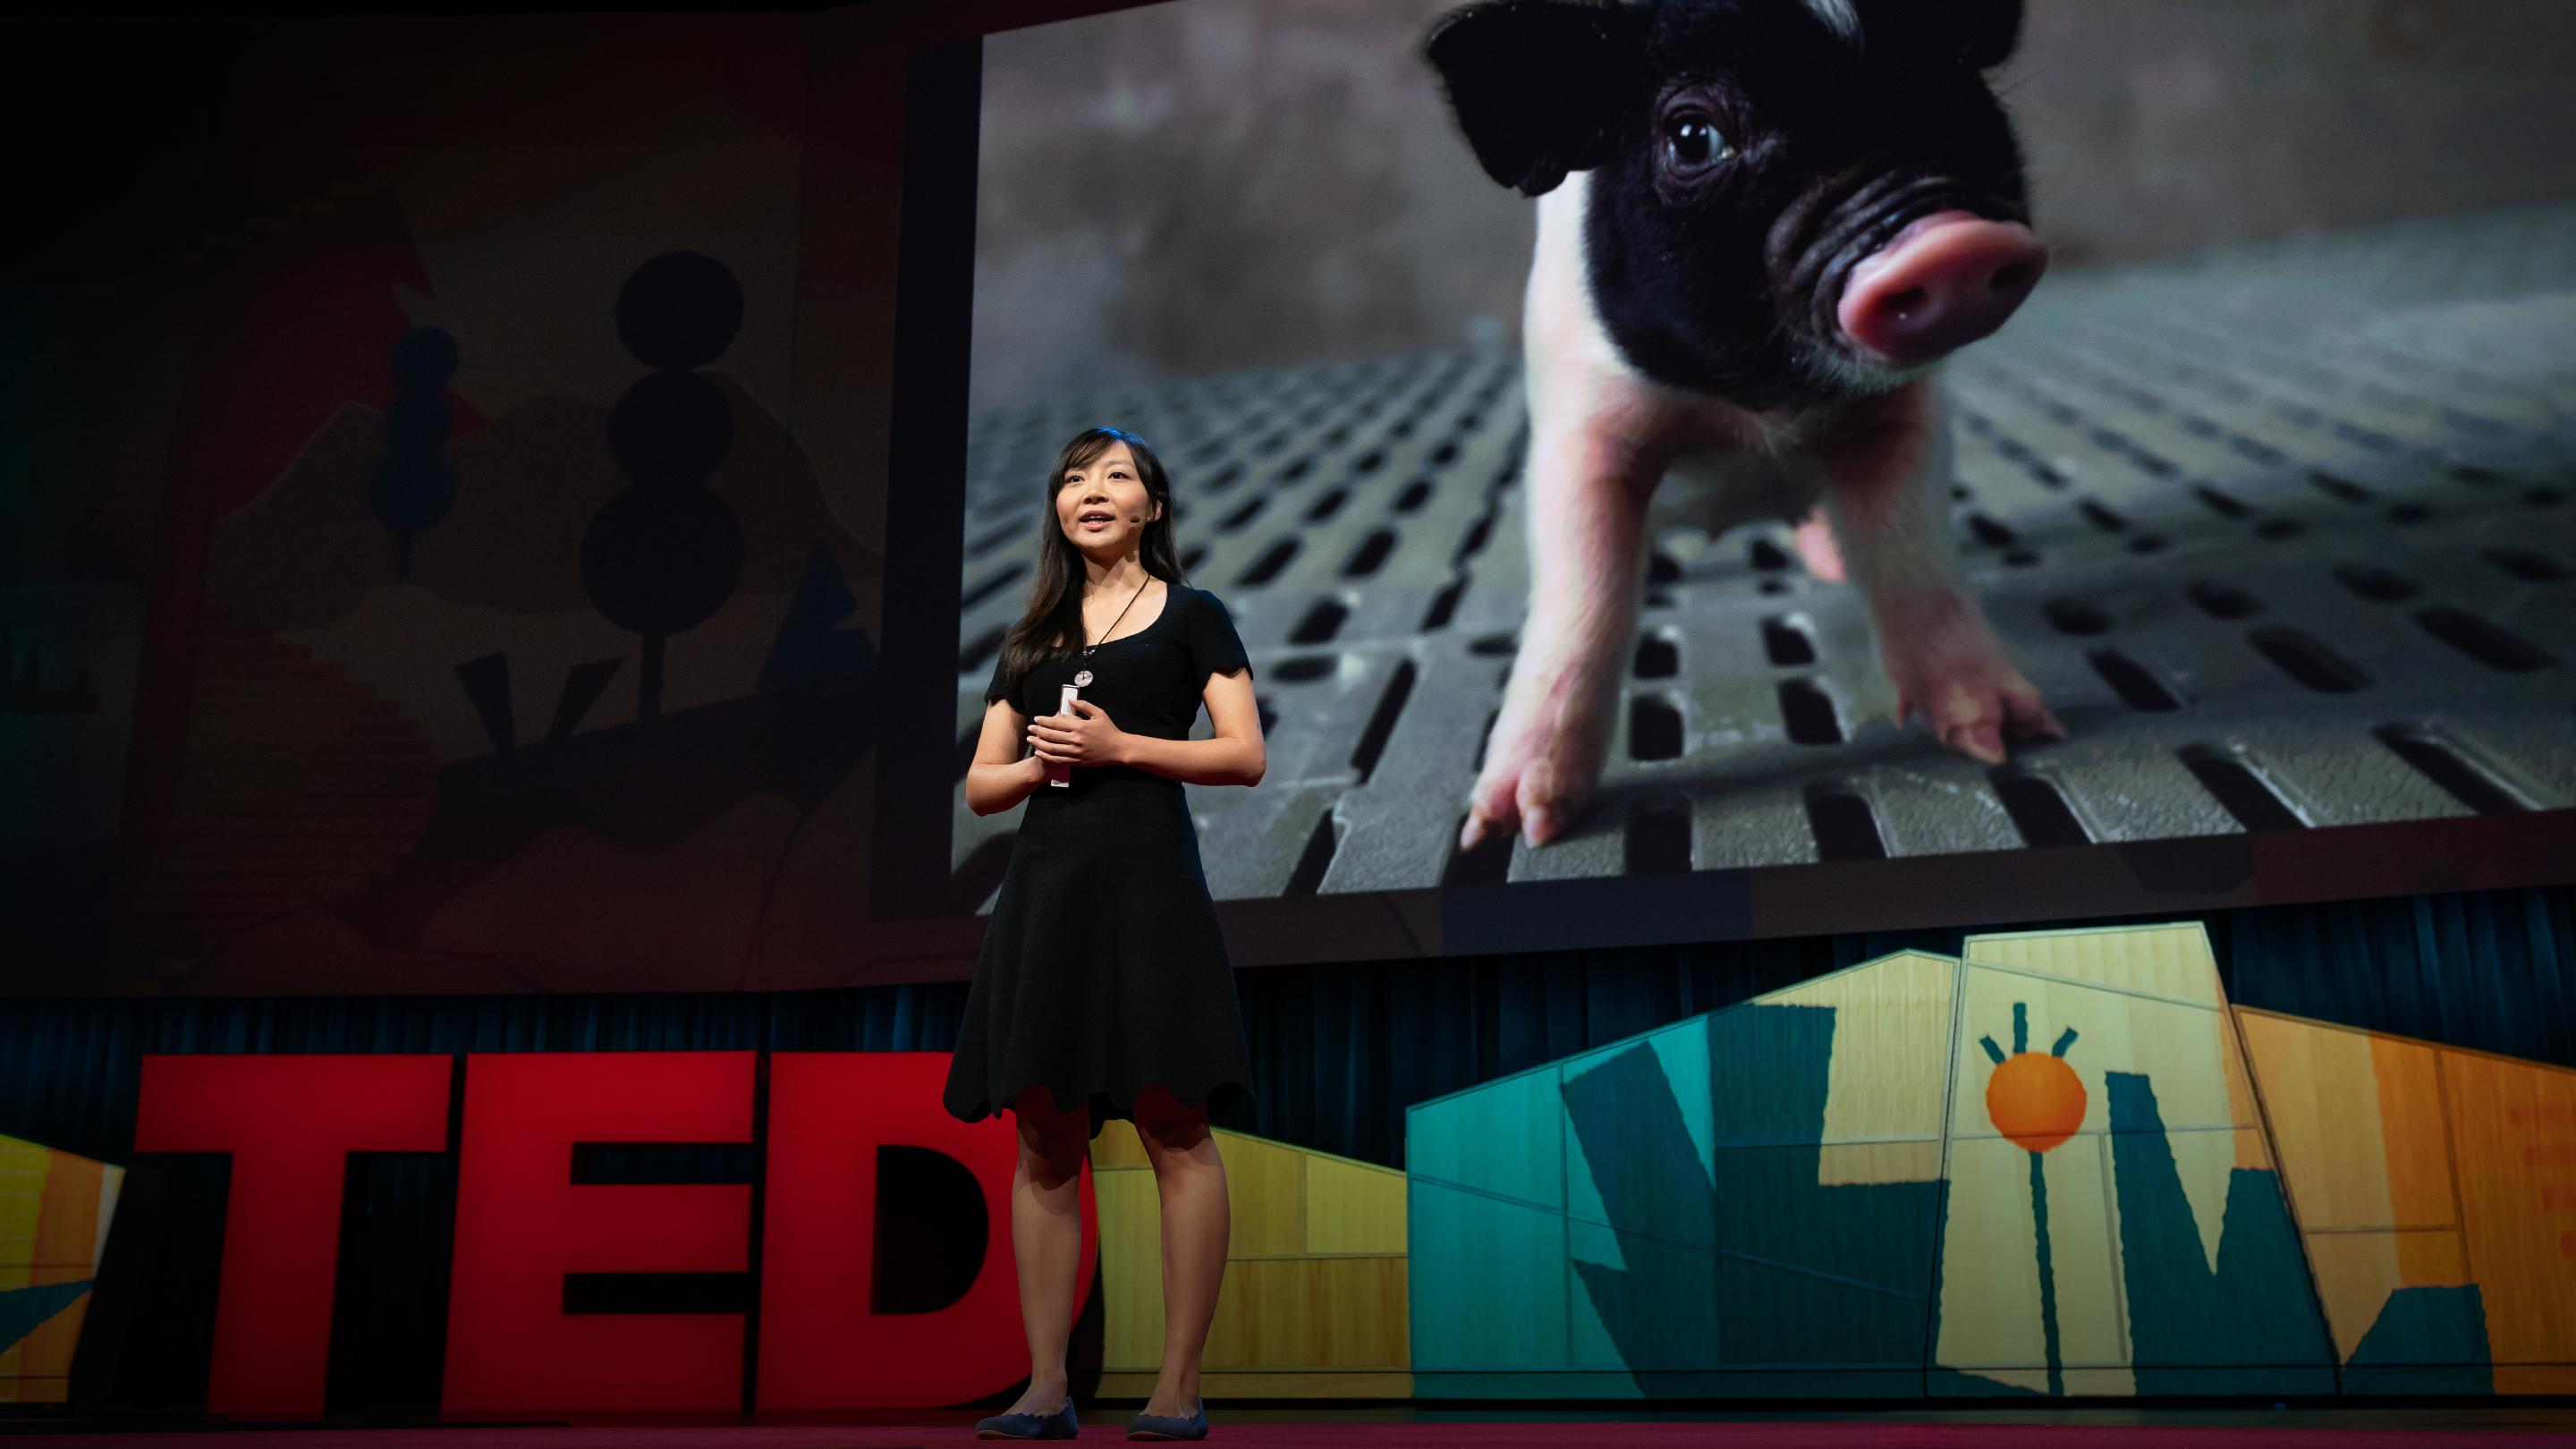 How to create a world where no one dies waiting for a transplant | Luhan Yang